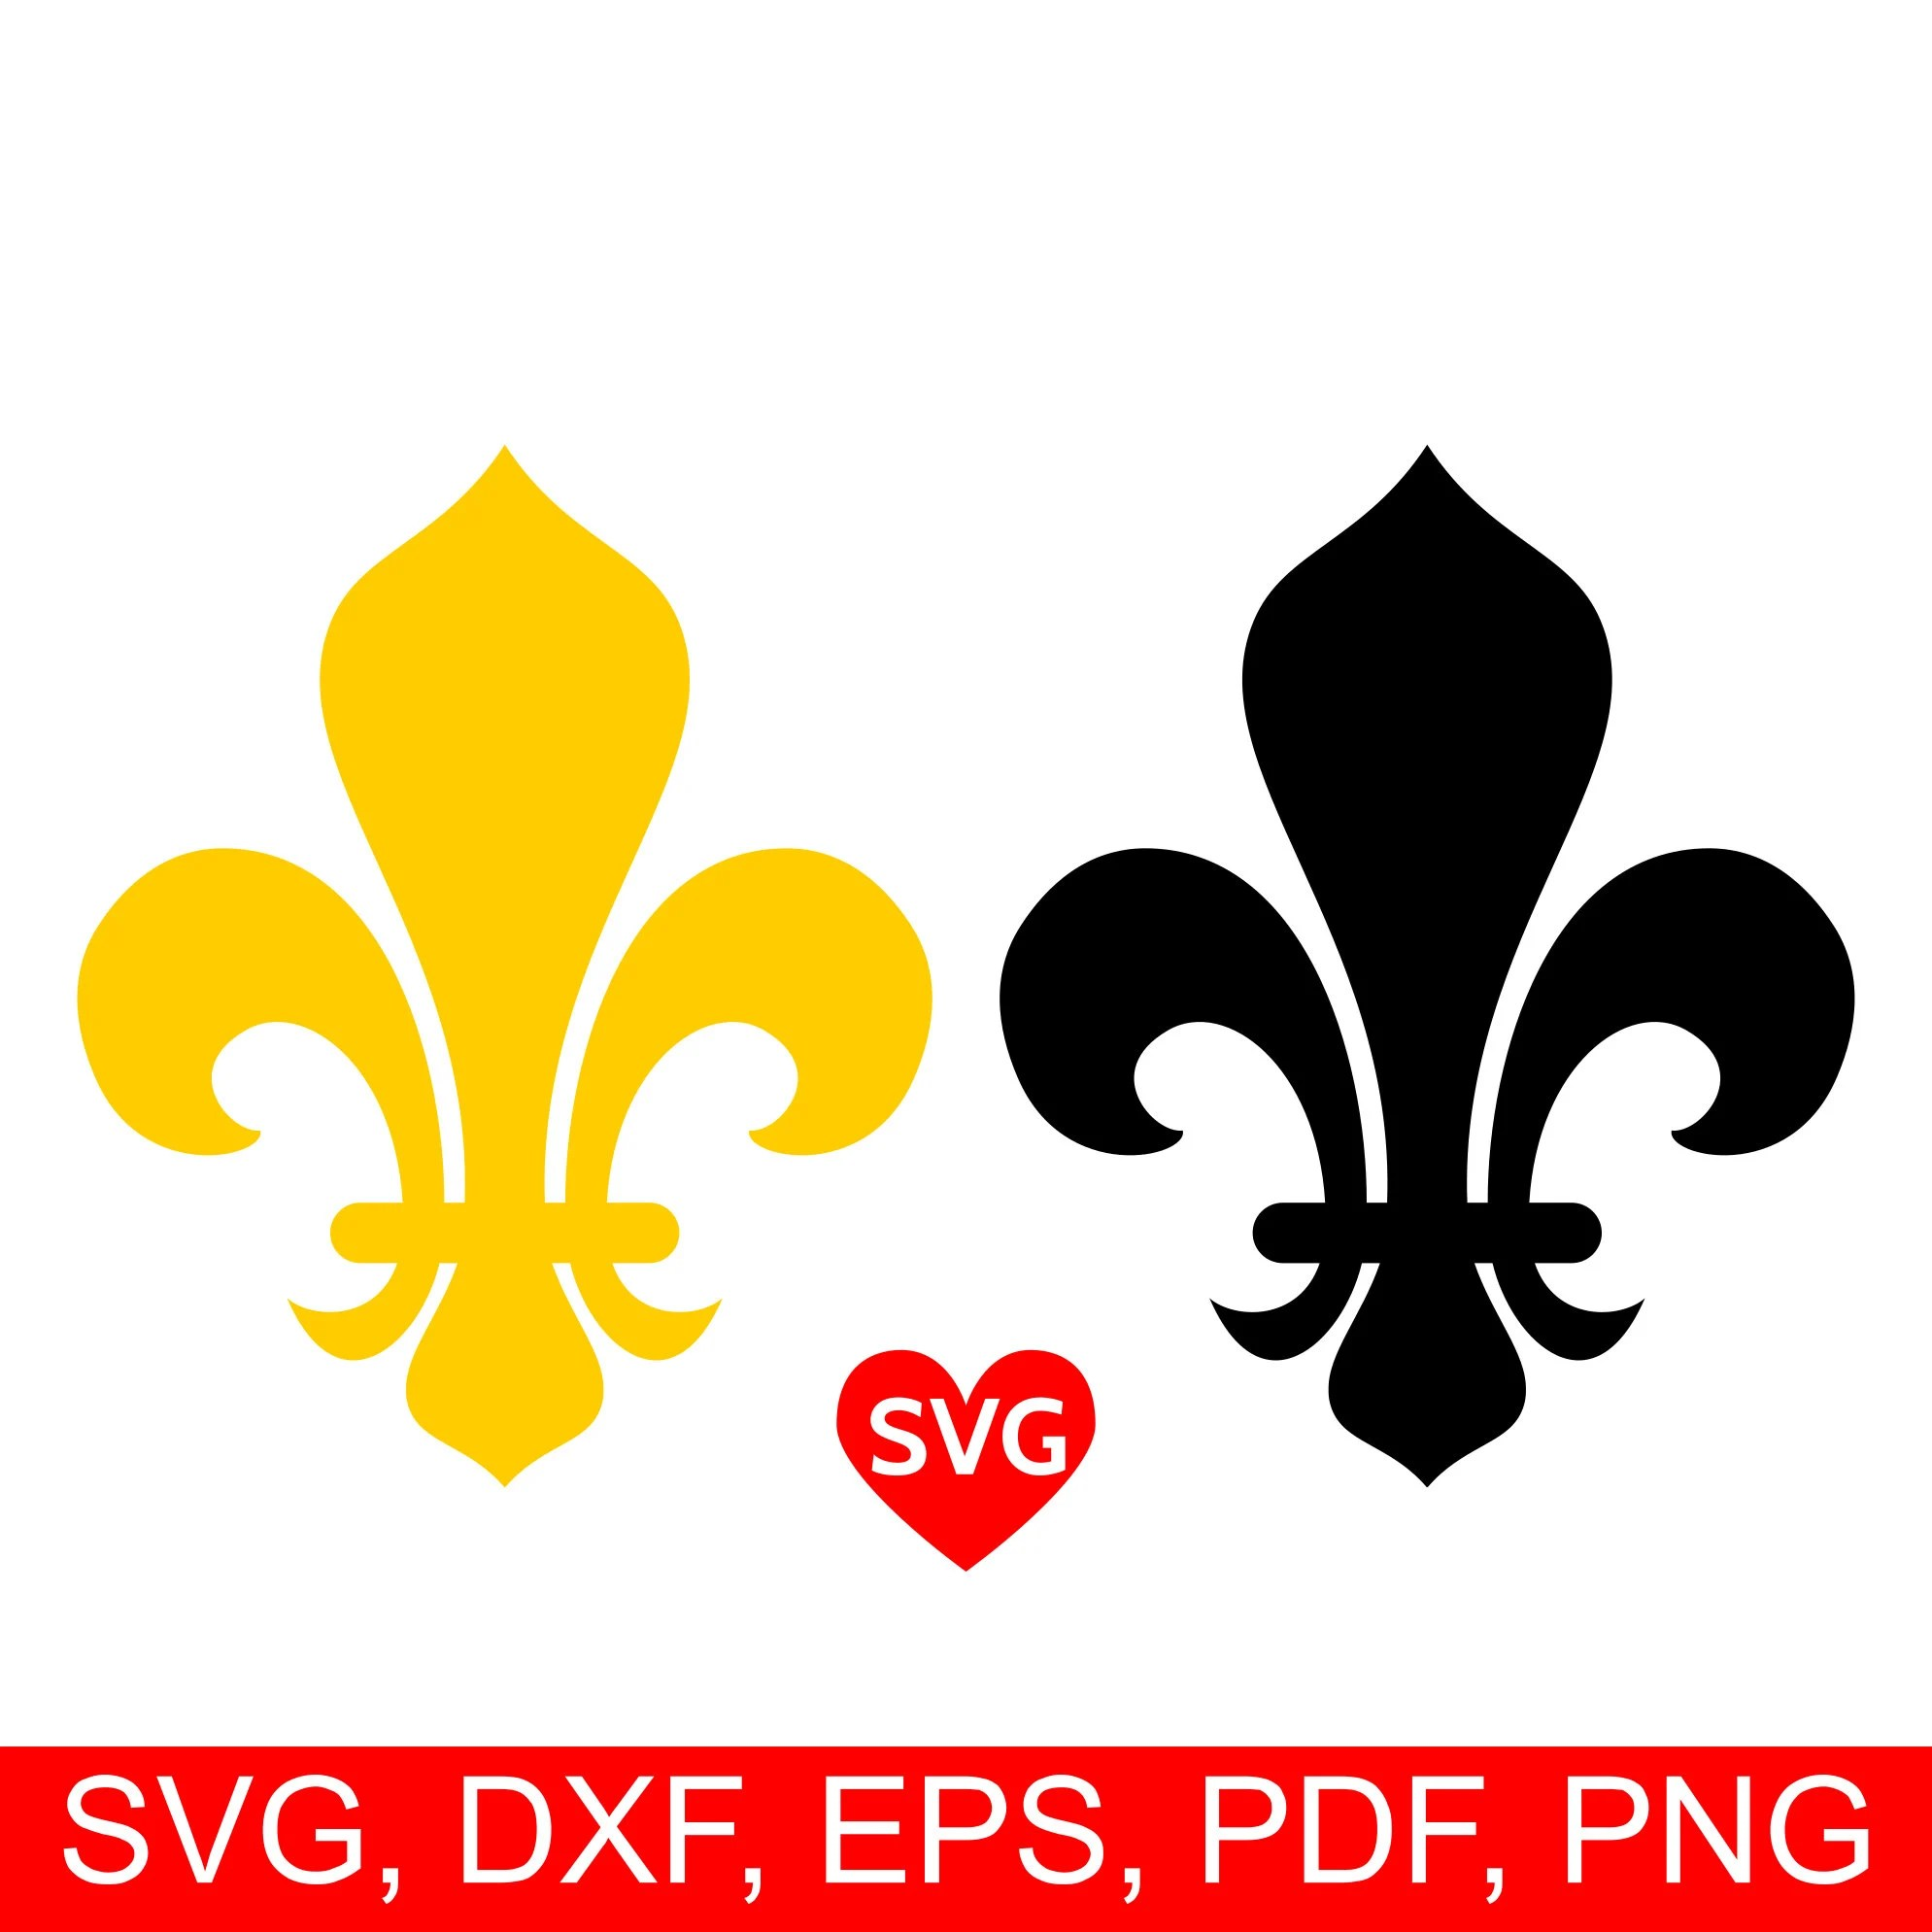 hight resolution of fleur de lys svg files royal fleur de lis clipart fleur de lys svg files for cricut king queen prince and princess svg files royalty svg